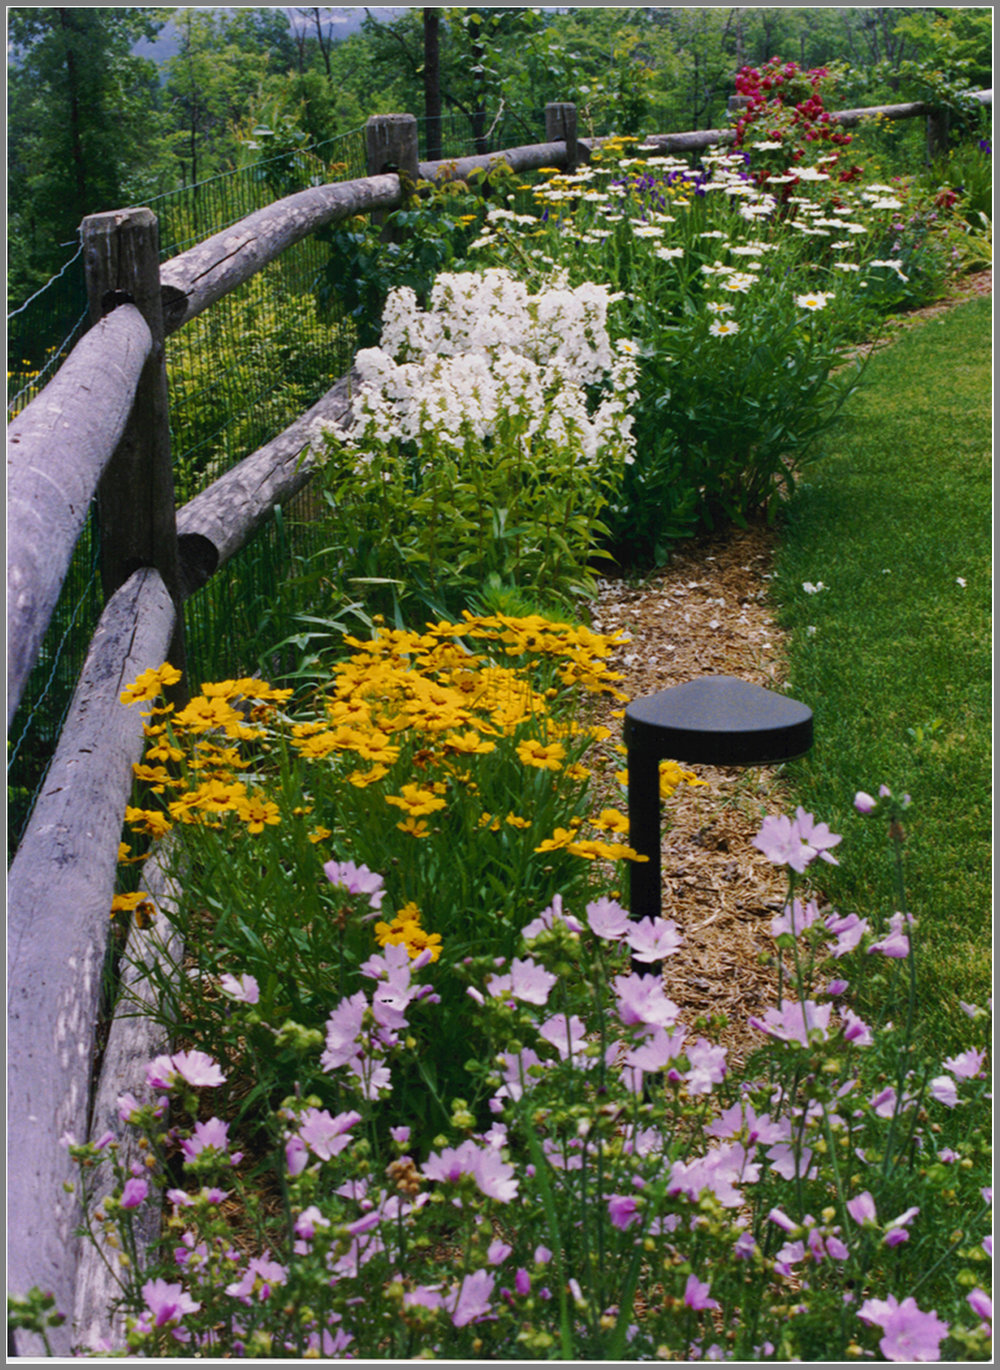 Post and rail fence with gardens